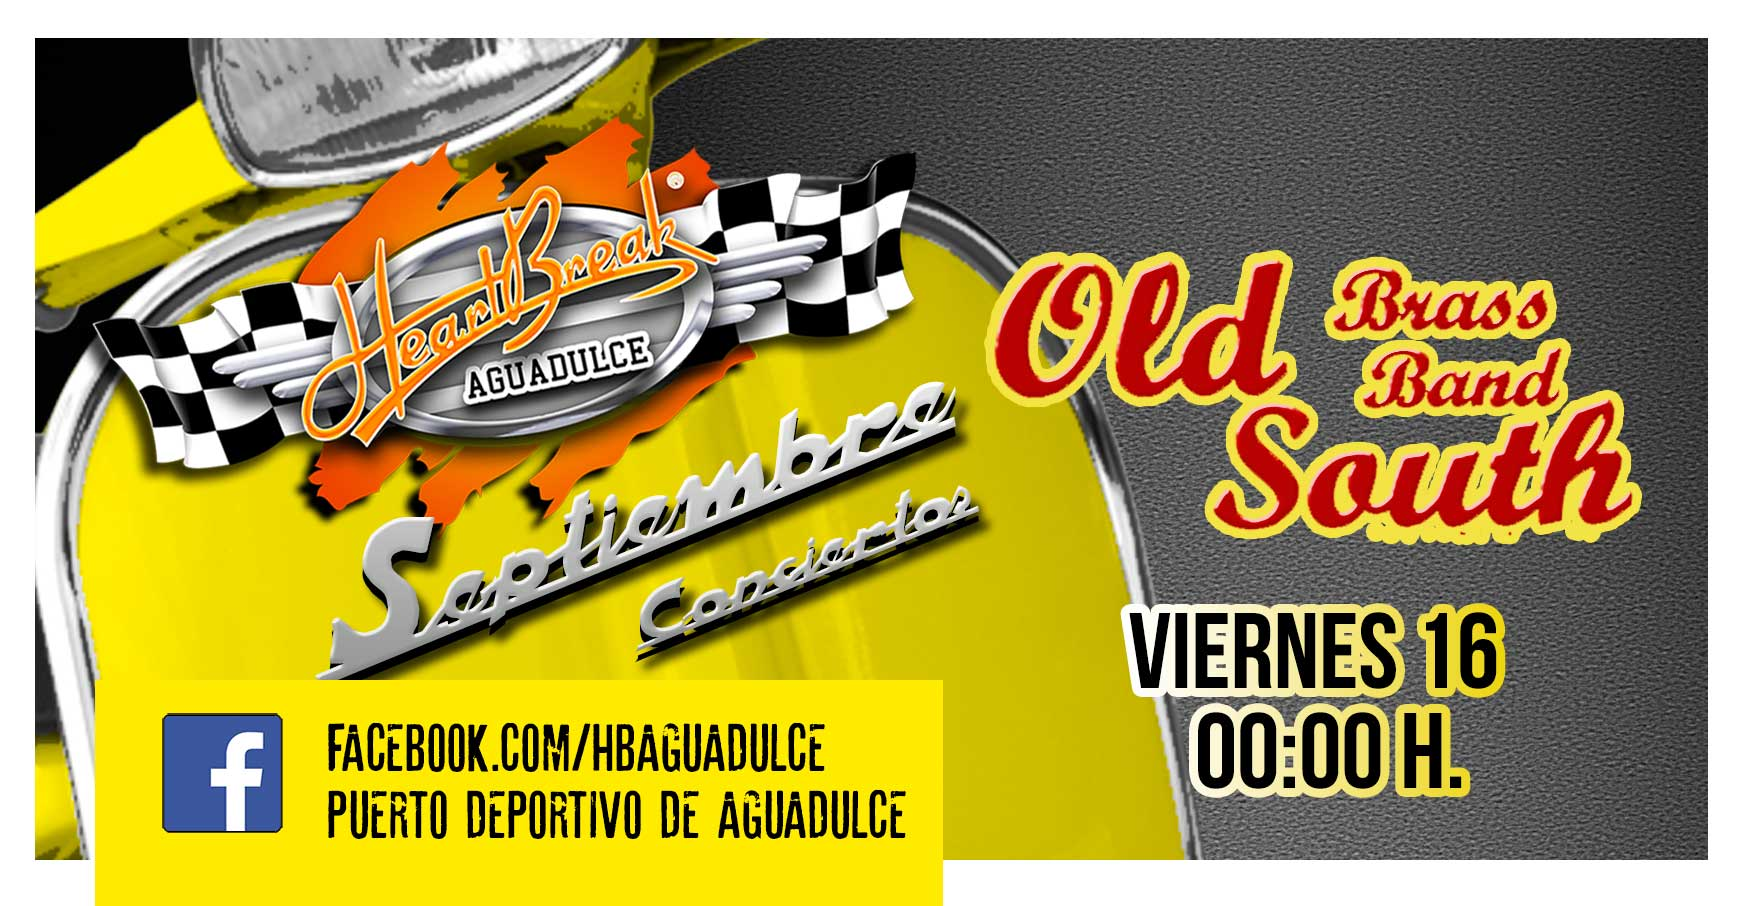 Concierto de Old South Brass Band